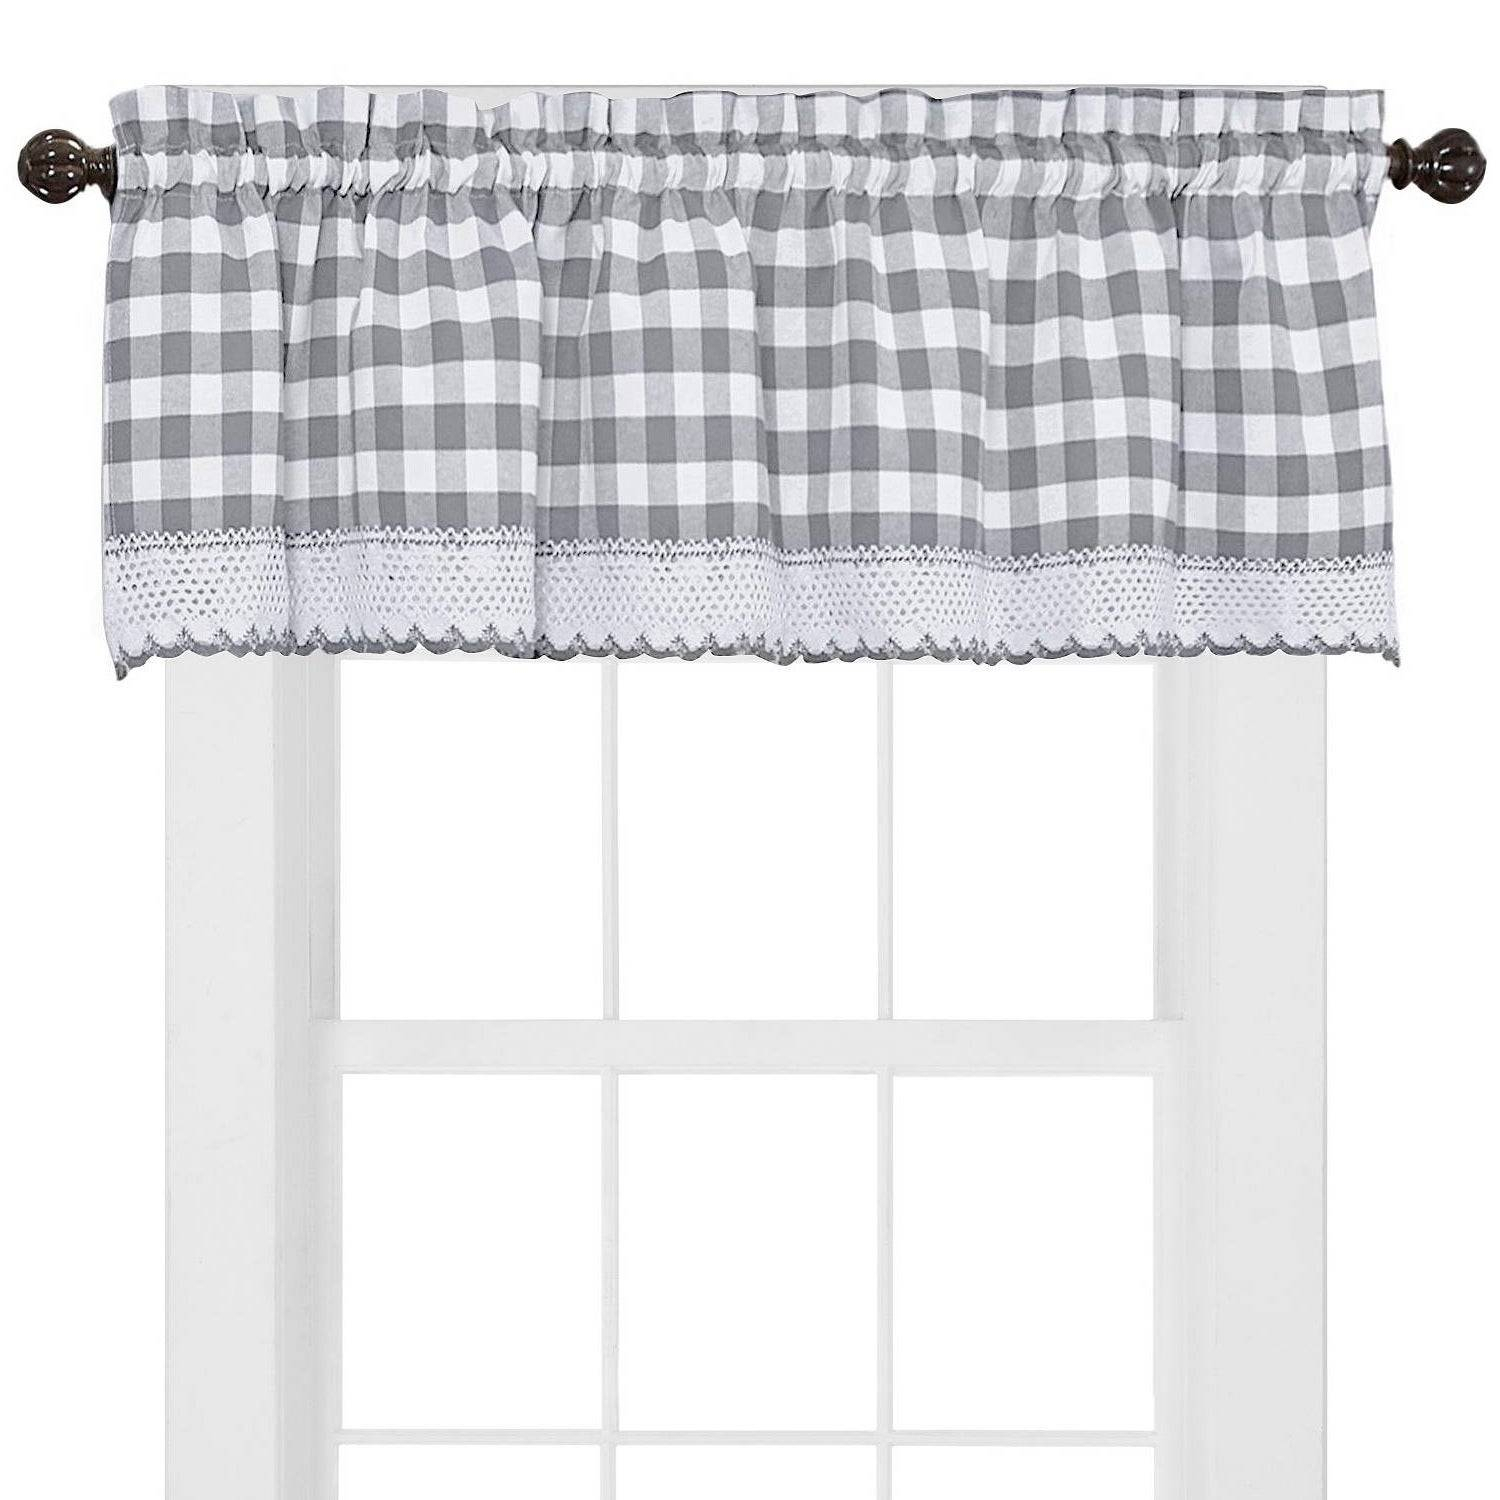 Alluring Black And White Checkered Kitchen Valance Valances Throughout Classic Black And White Curtain Tiers (View 4 of 20)